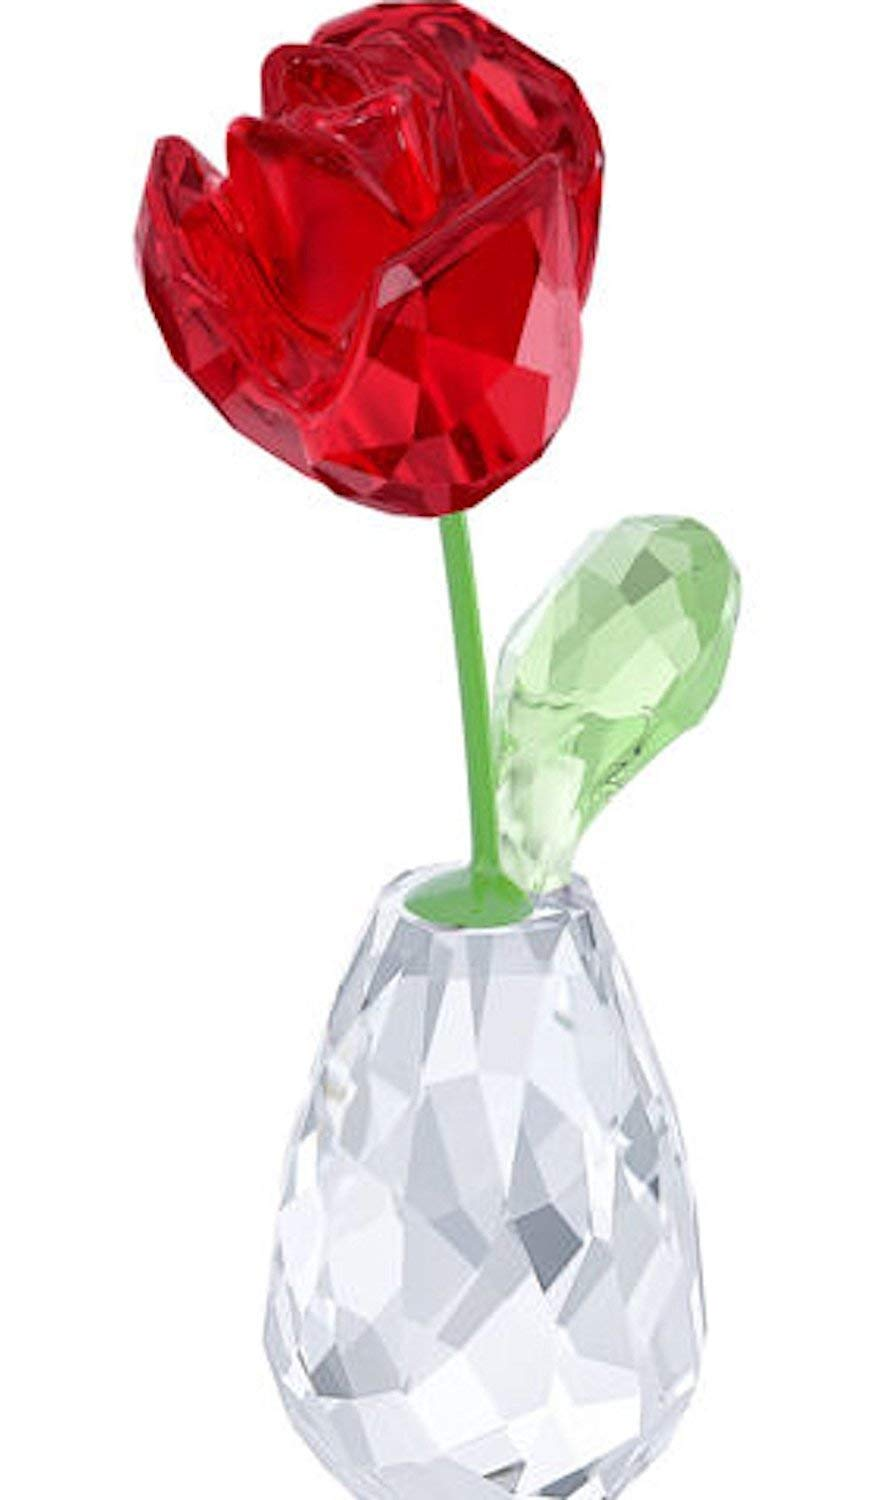 Swarovski Flower Dream Red Rose - china-cabinet.com